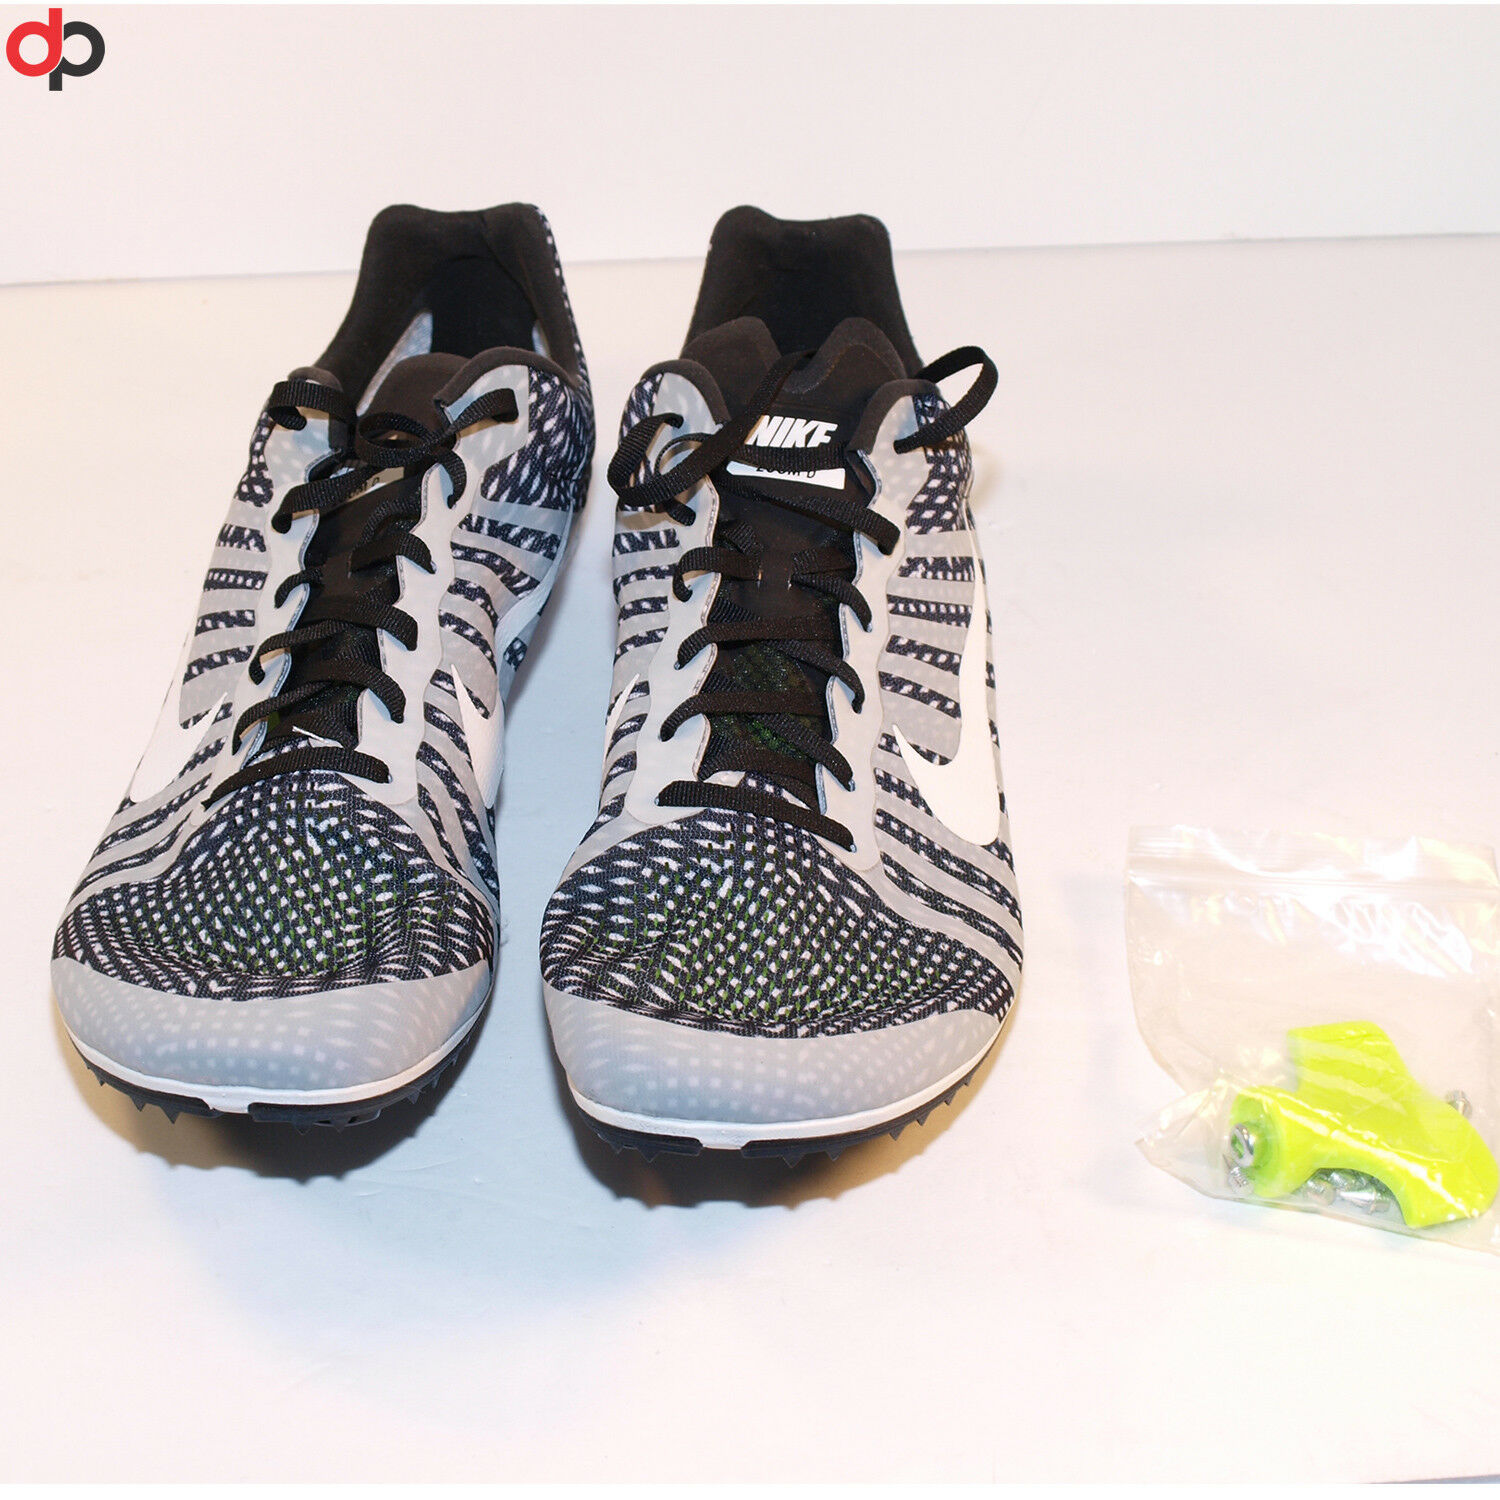 NIKE ZOOM D DISTANCE TRACK SPIKES Black/White/Gray 819164-010 Comfortable